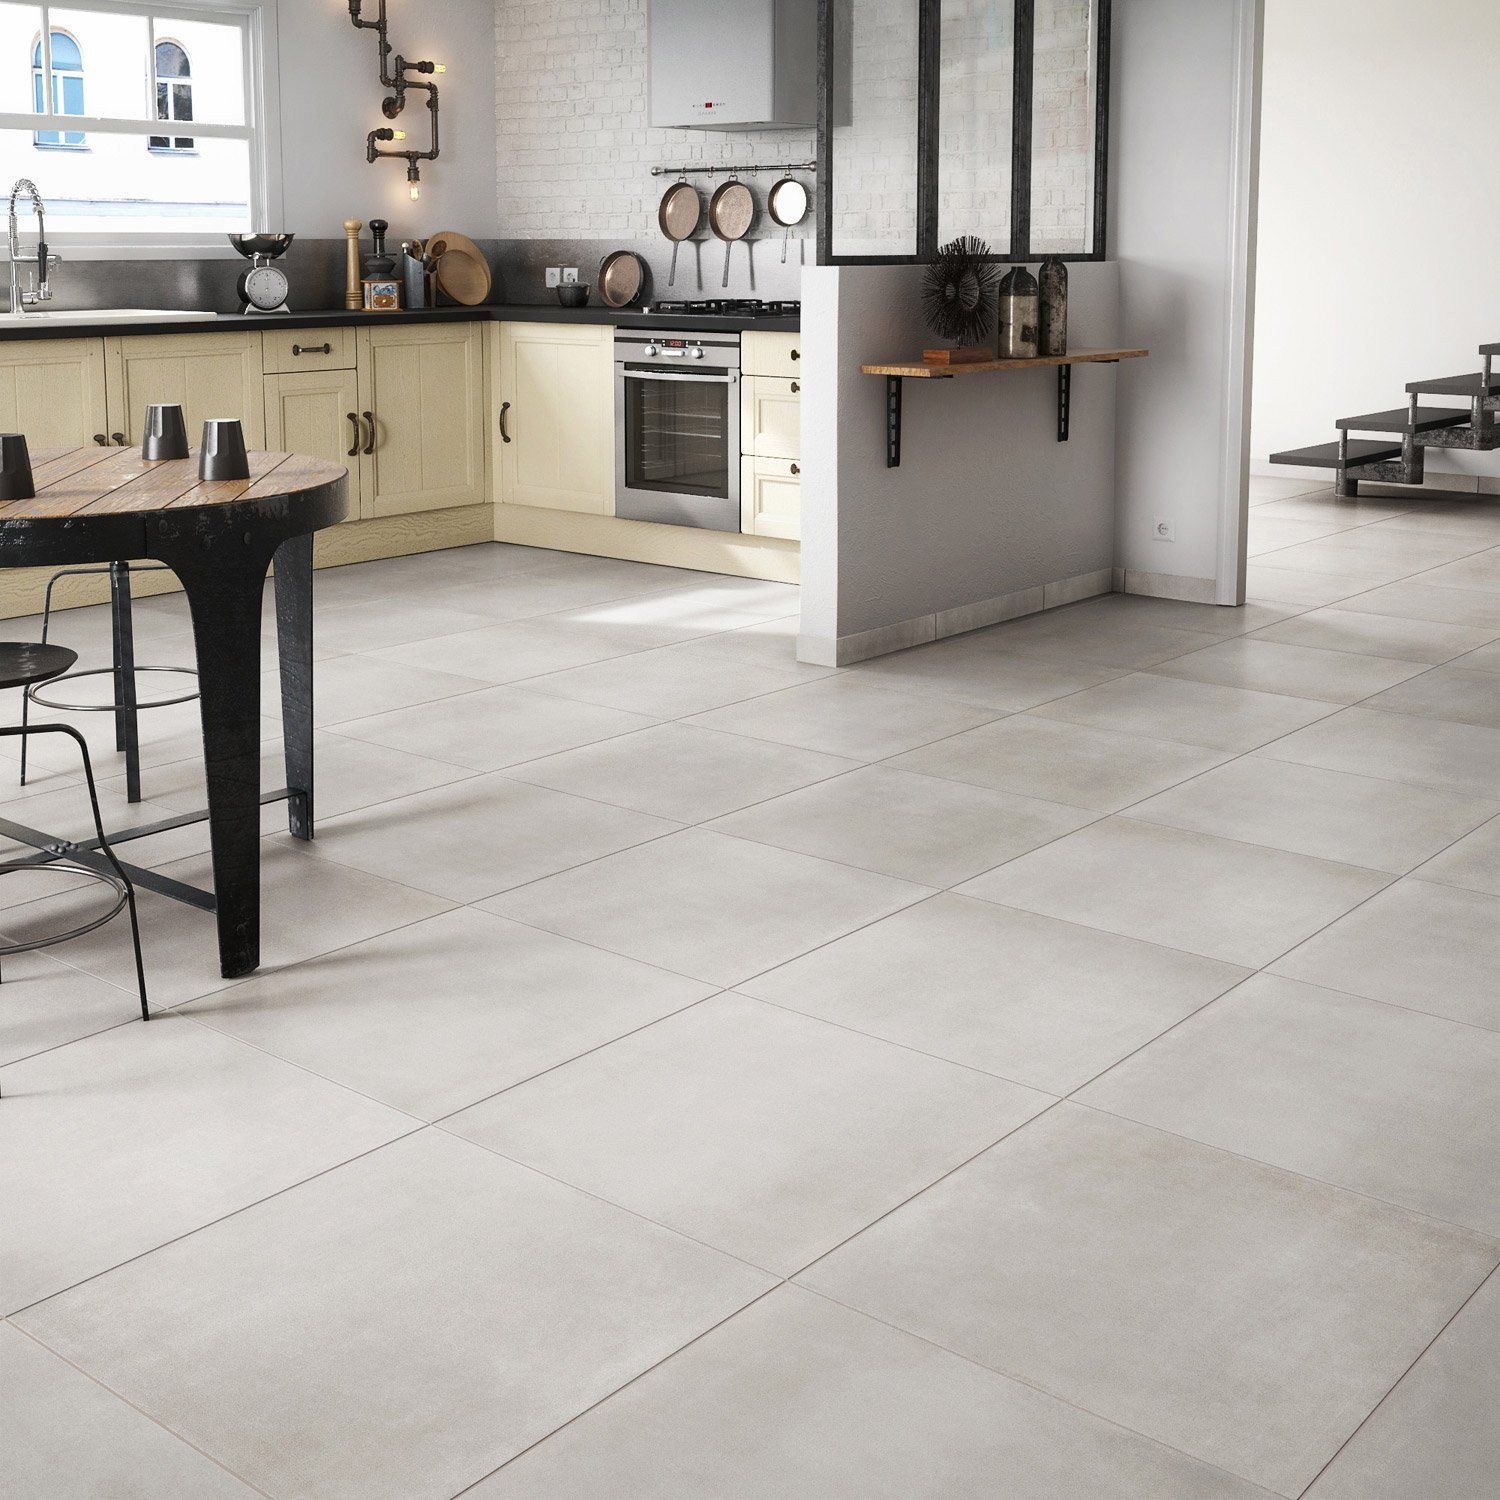 Carrelage sol et mur gris clair aspect b ton l 39 appart for Carrelage sol salon